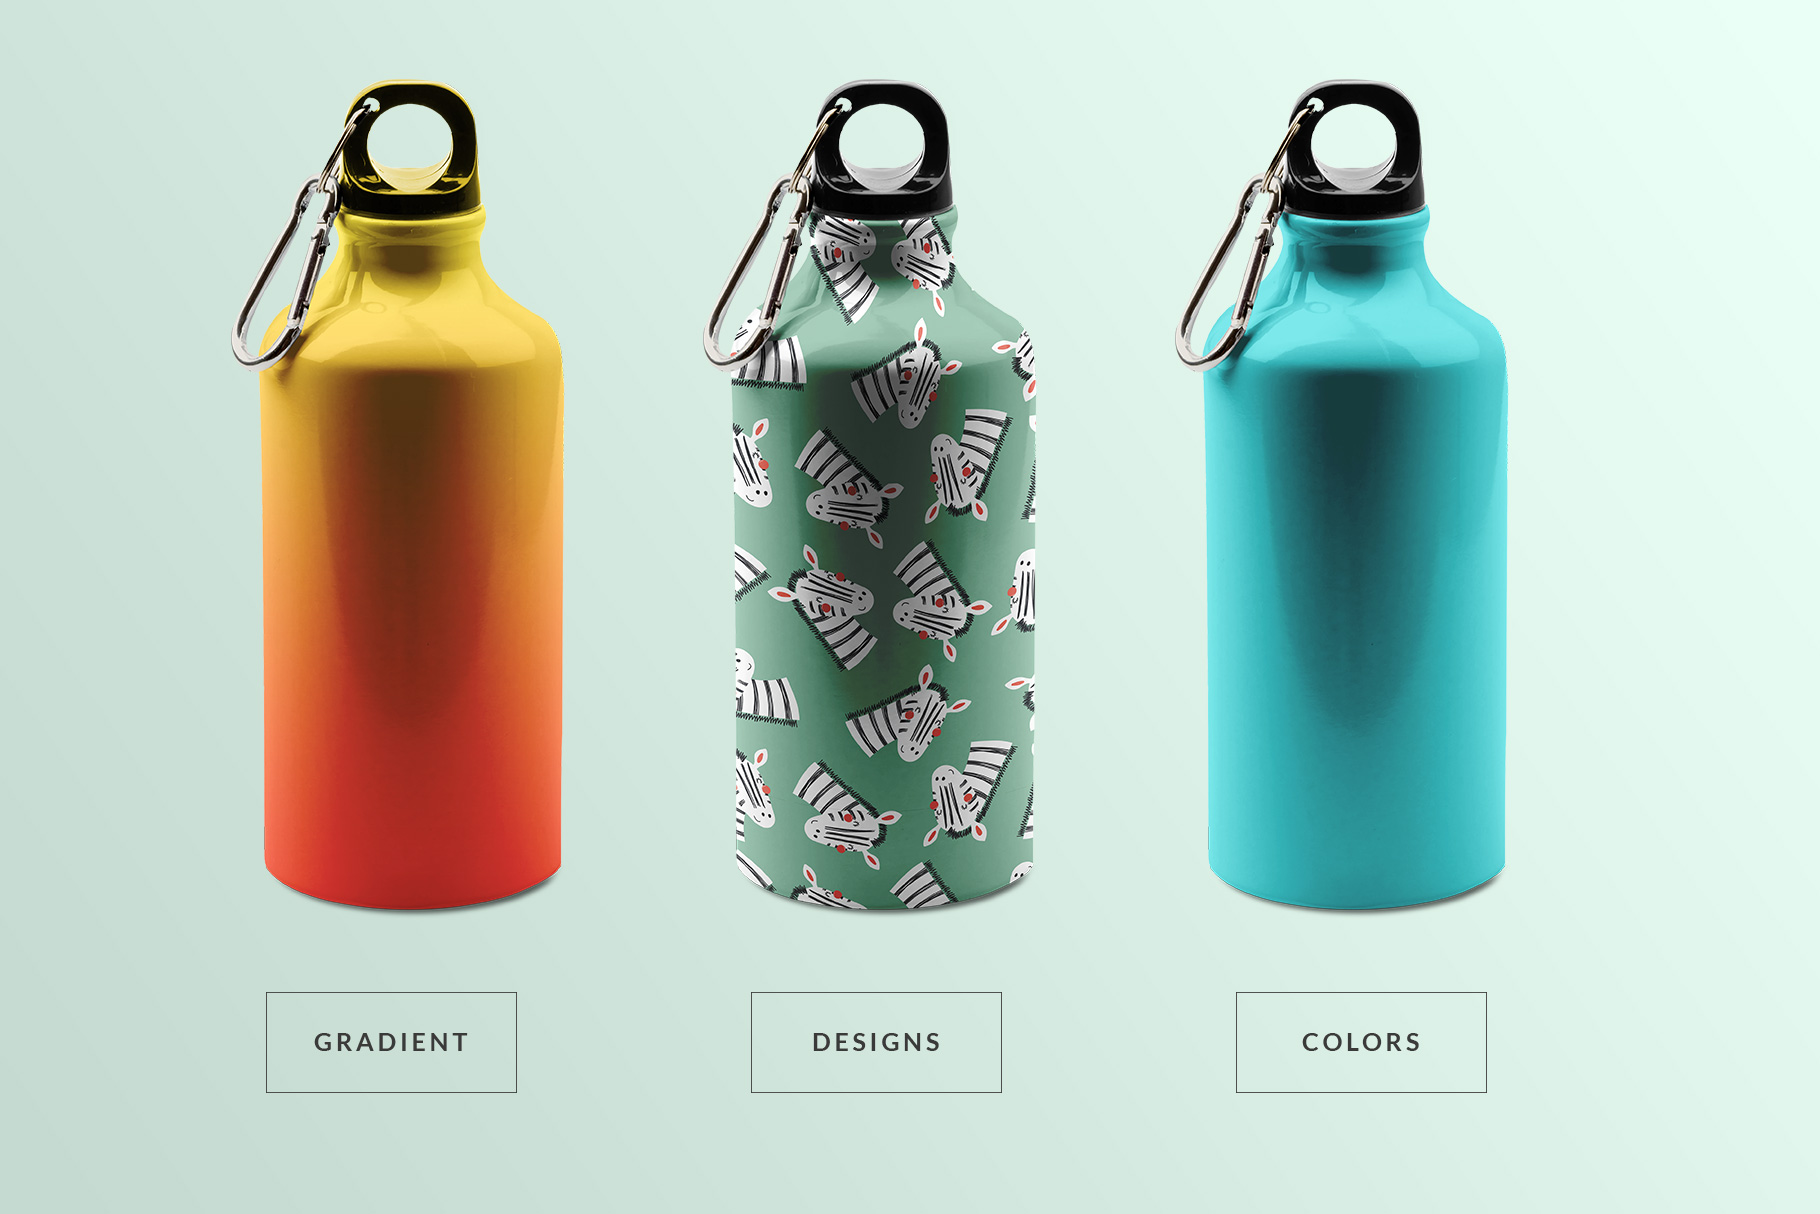 types of the stainless sports water bottle mockup